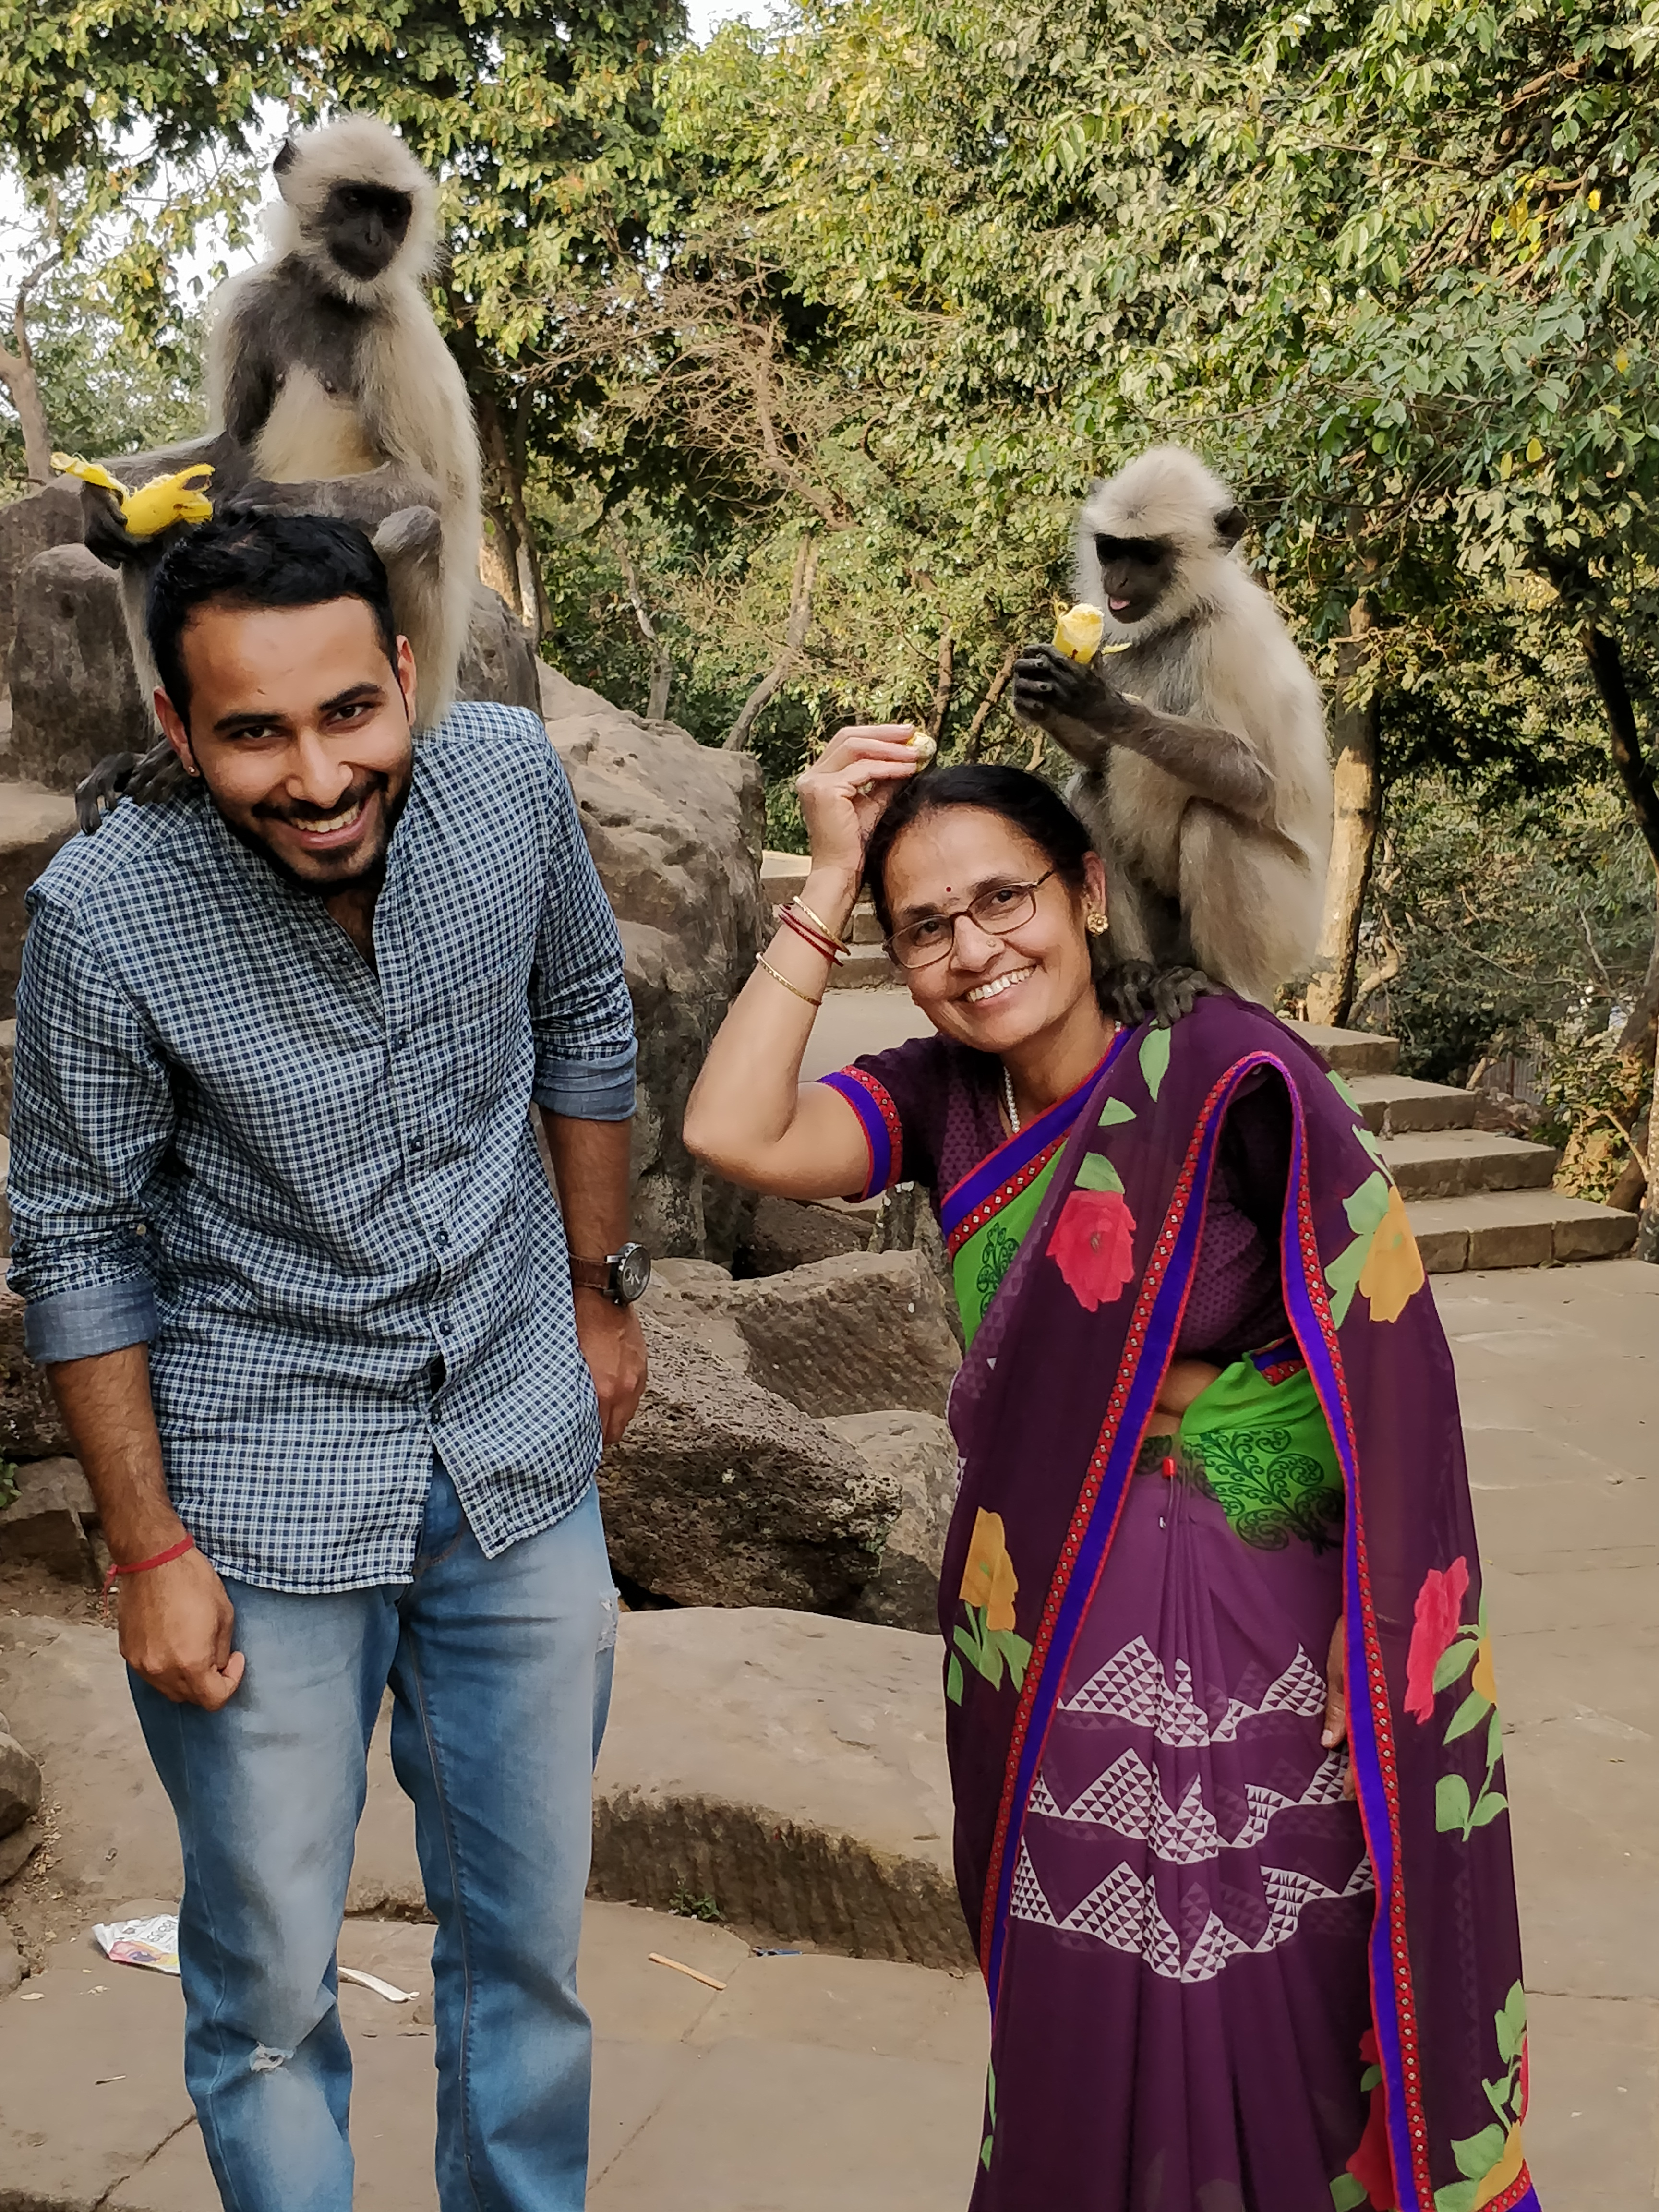 Langurs seated on Shoulders of an Indian guy and his mother, receiving bananas at Udaygiri and Khandagiri Caves, Bhubaneswar, India